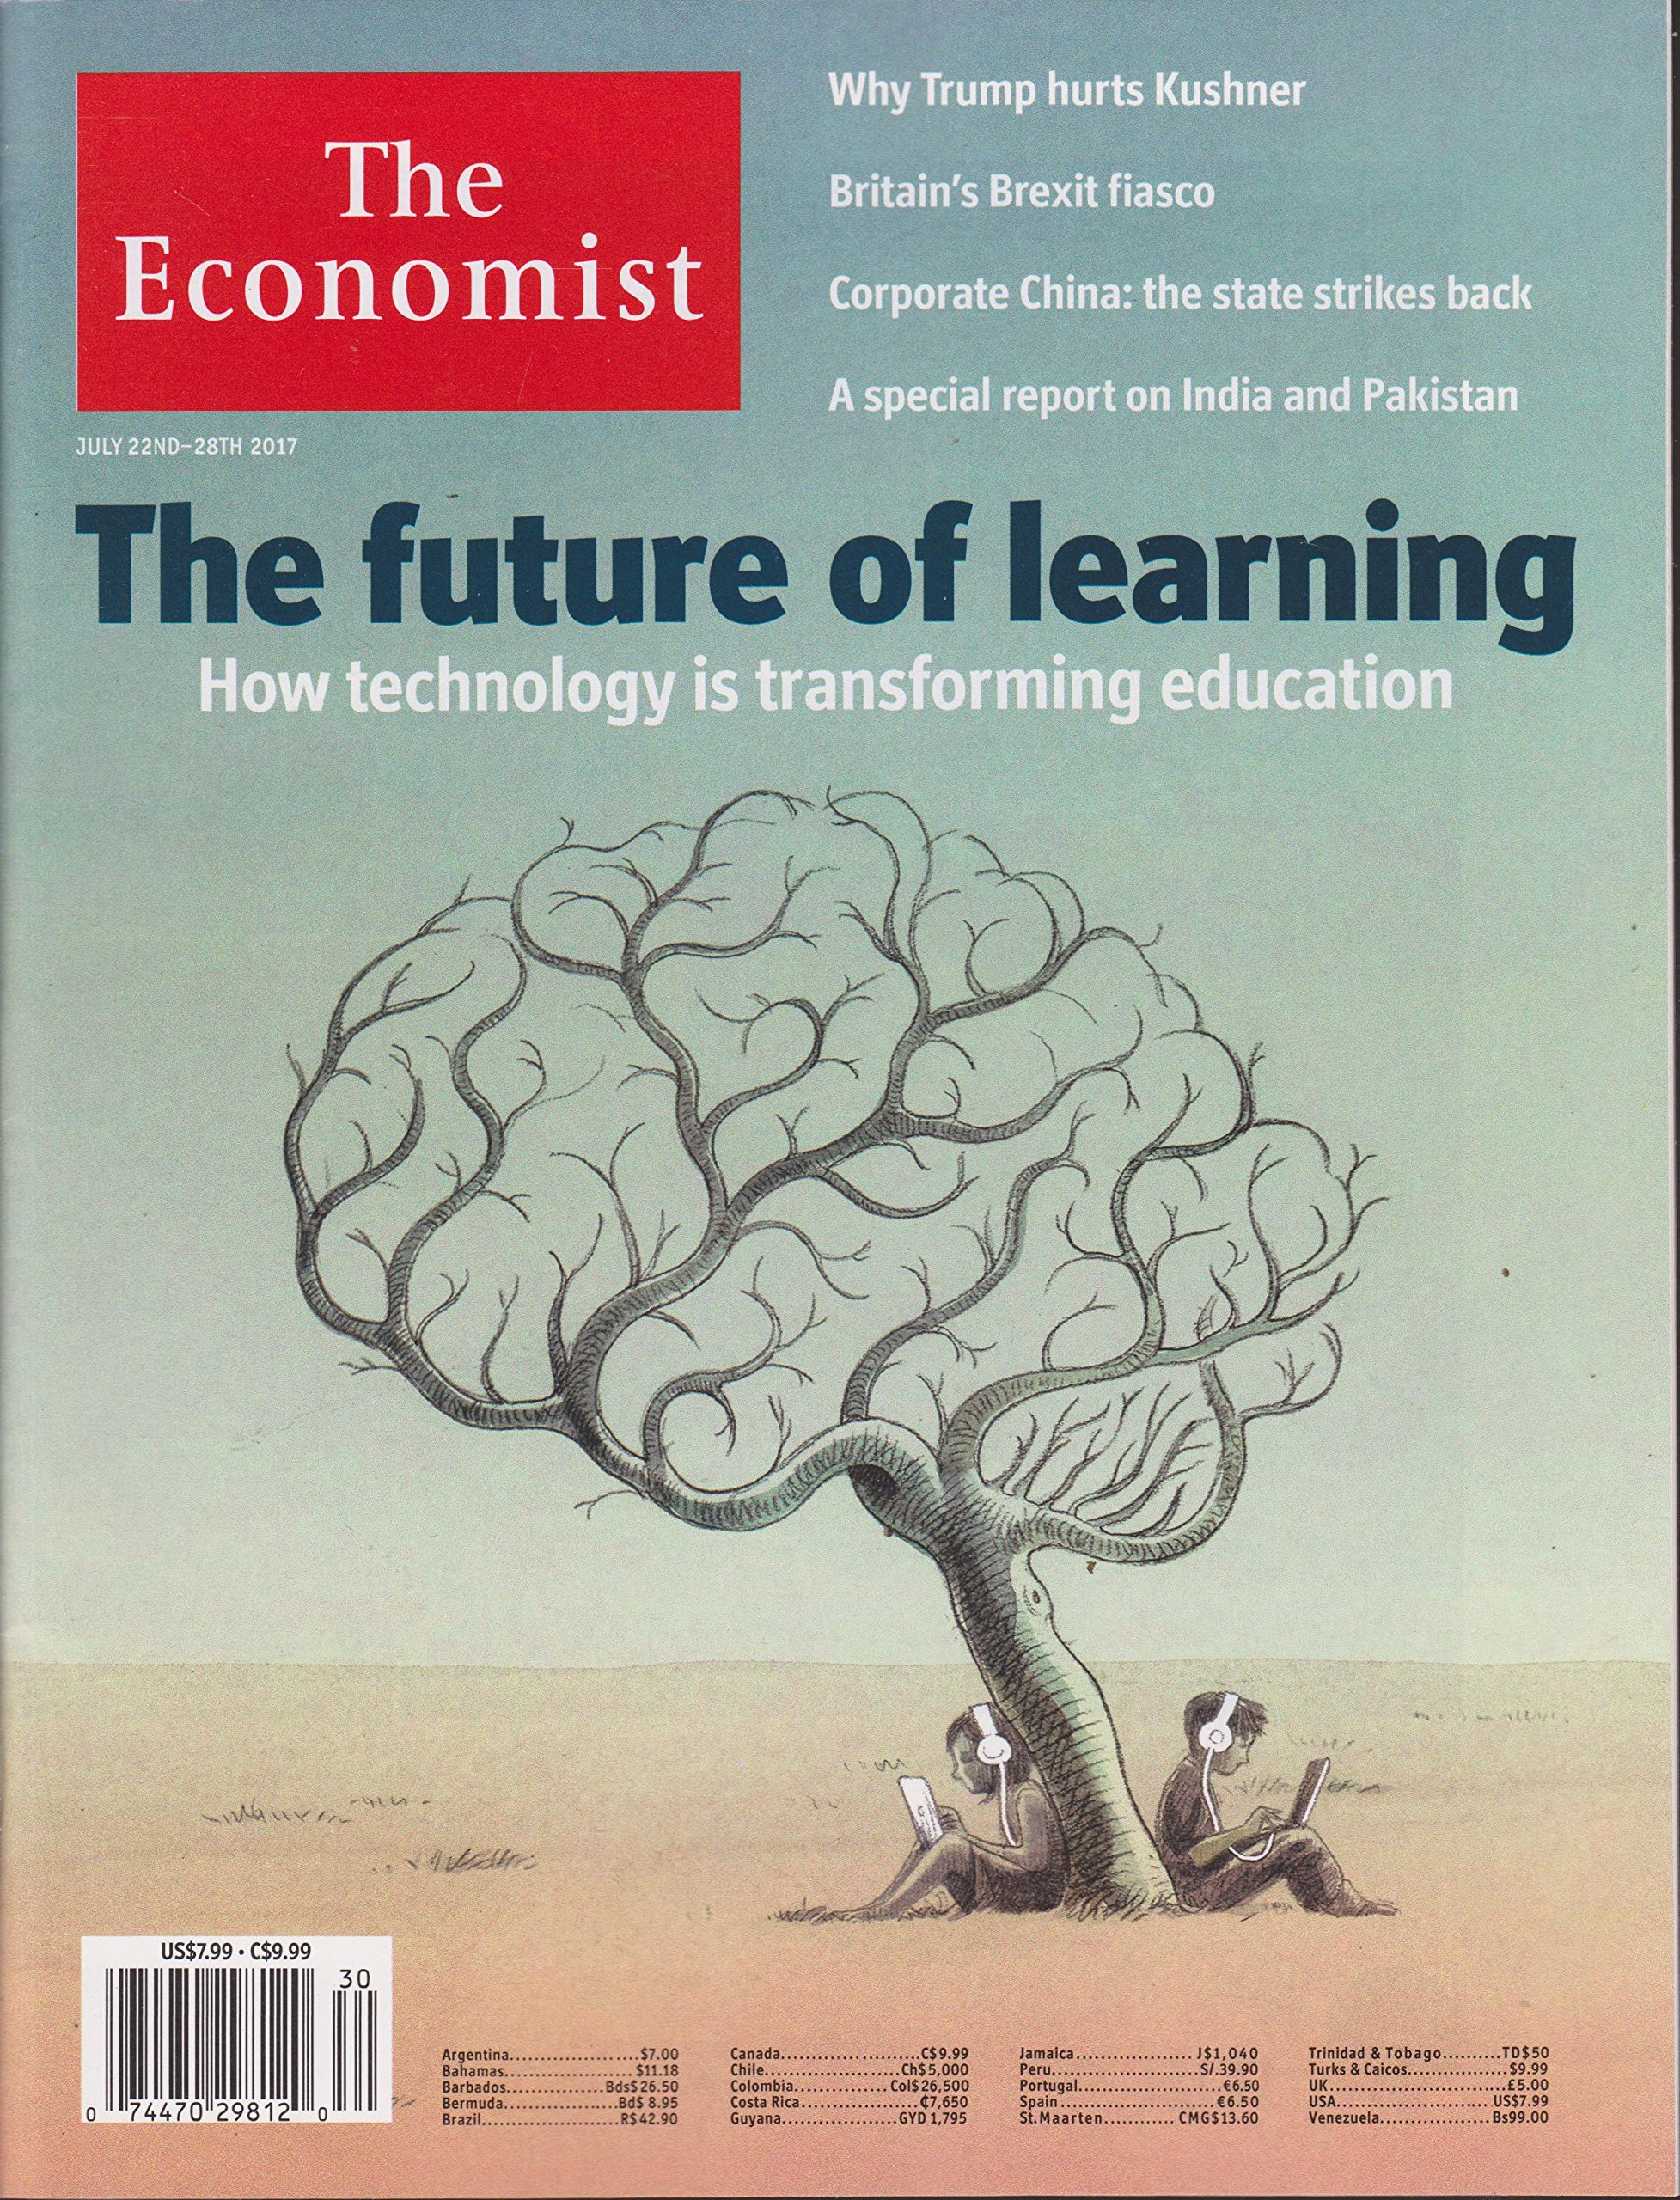 Download The Economist Magazine July 22-28 2017 The Future of Learning PDF